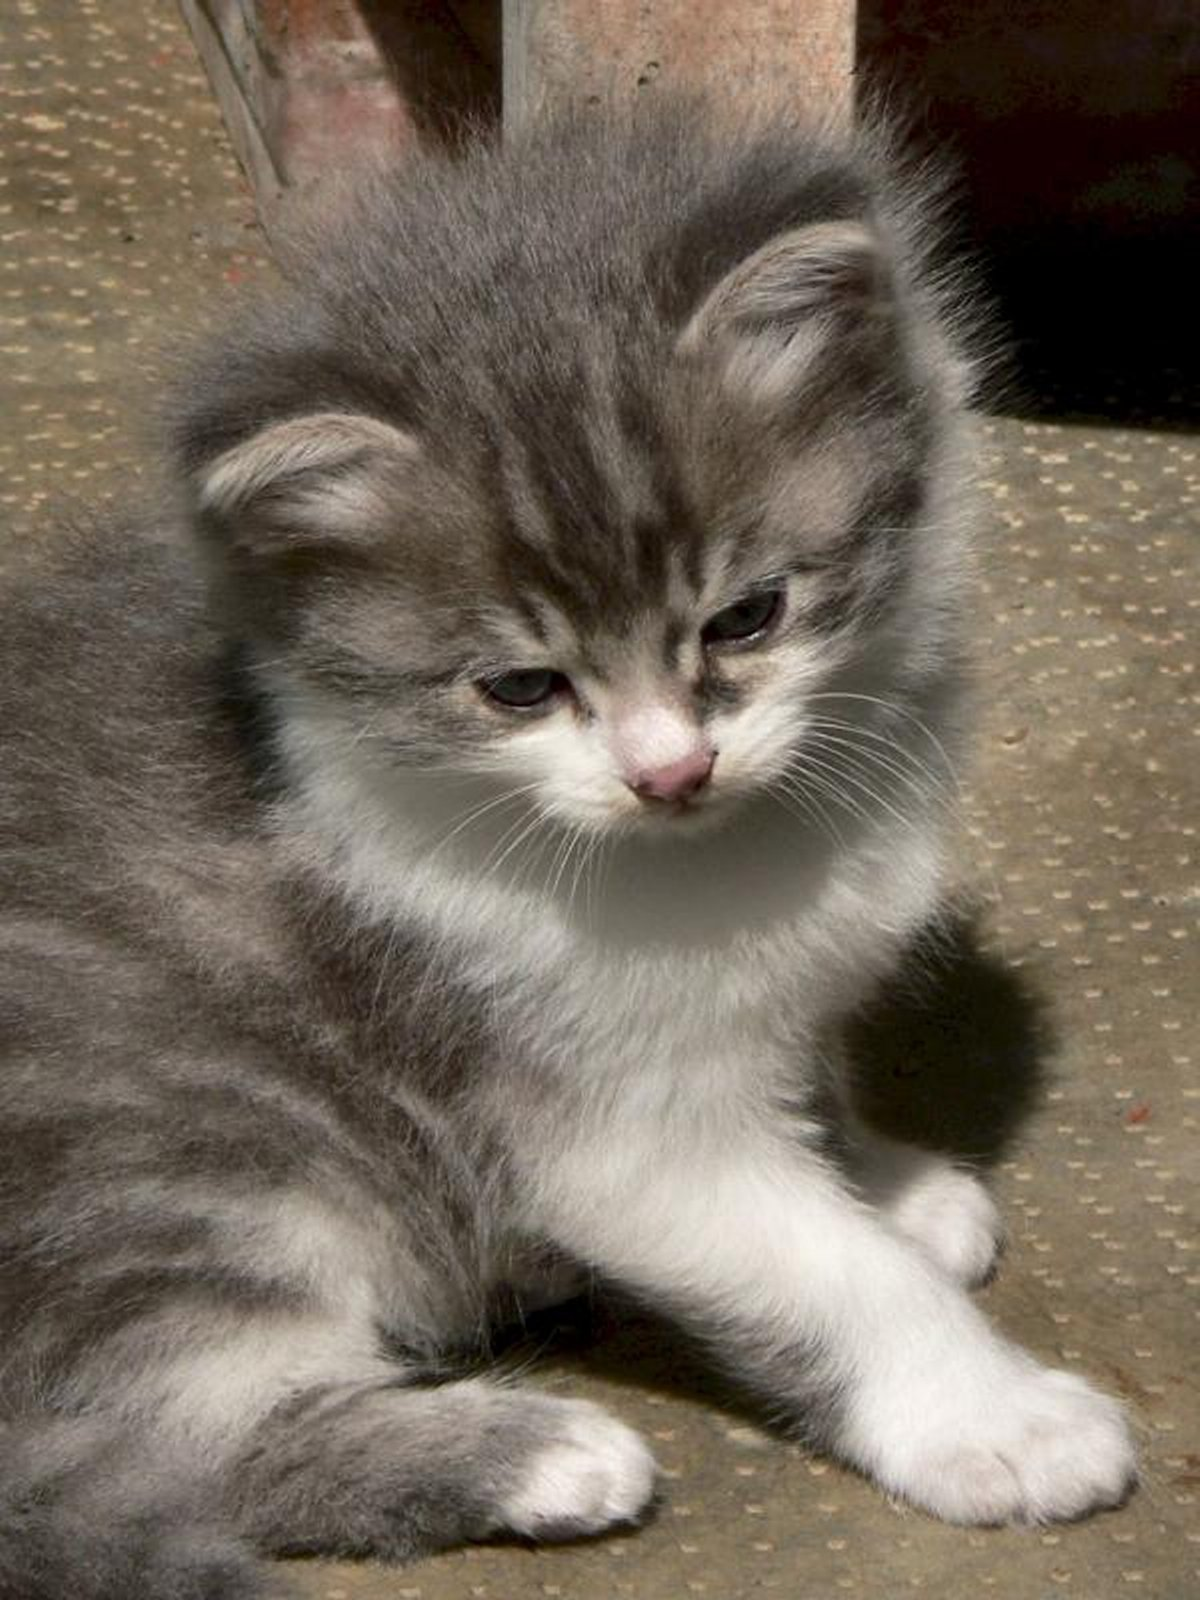 cats-and-kittens-0046